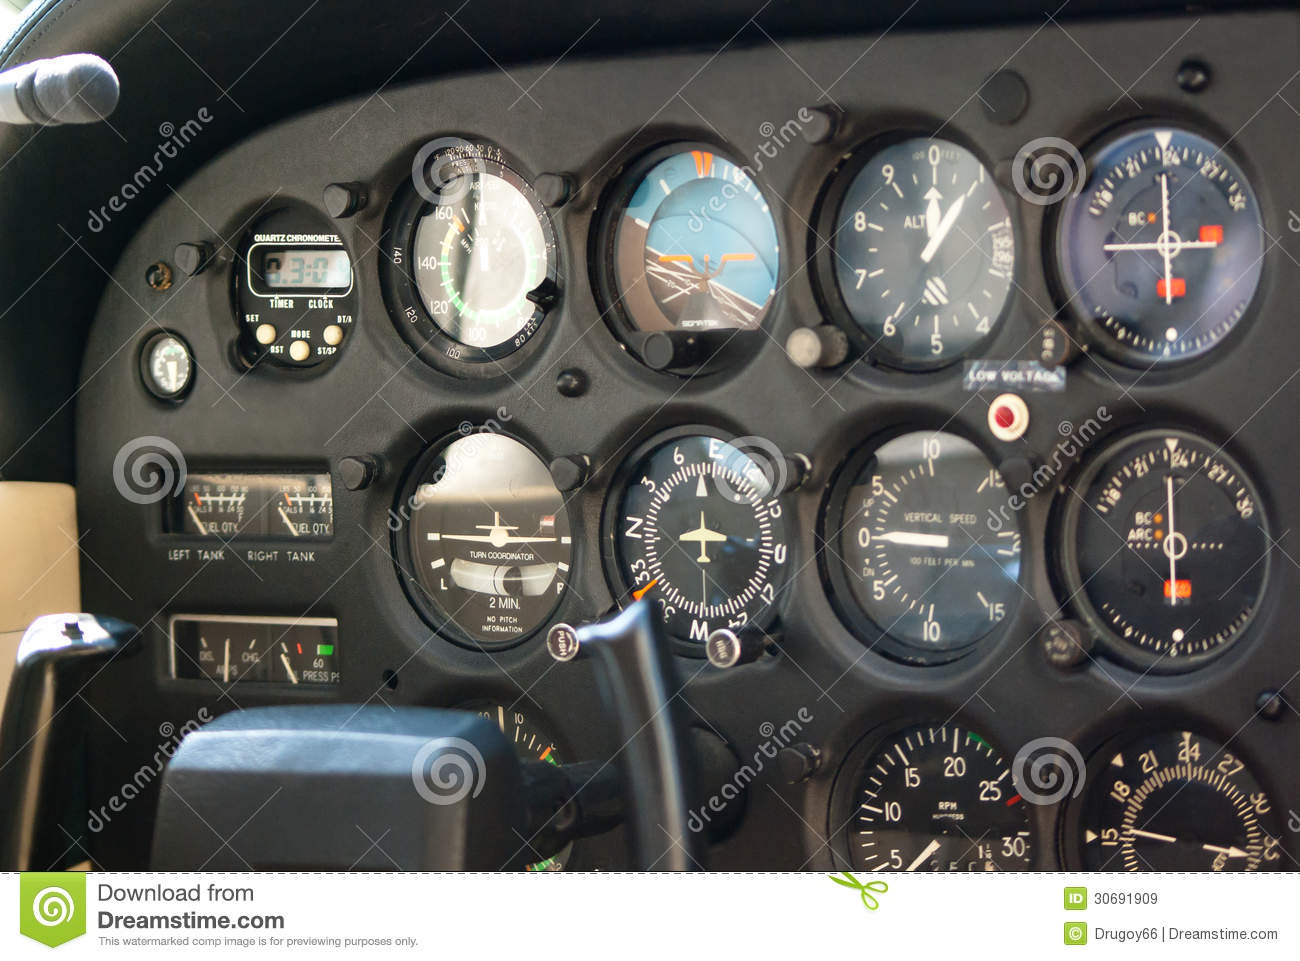 Airplane Instrument Panel : Airplane instrument panel royalty free stock images